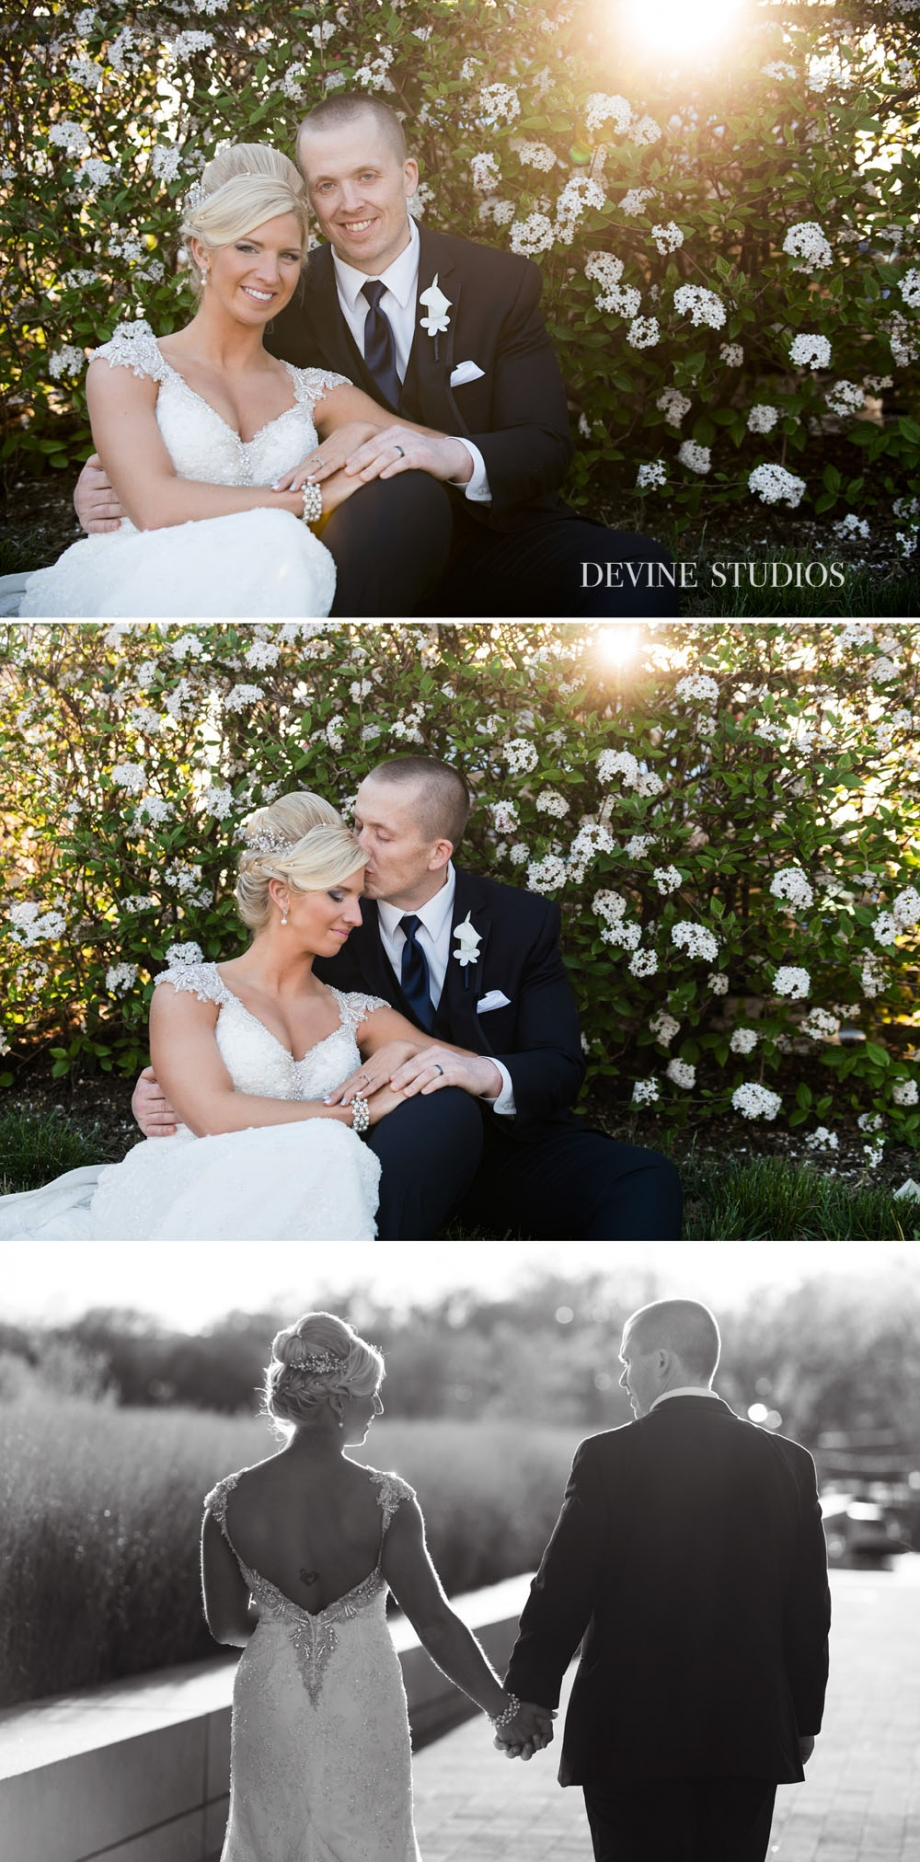 http://devinestudios.com/boudoir/wp-content/uploads/2016/05/10-839-post/Kansas-City-Wedding-Photography-Town-Pavilion-photojournalist-photographers15(pp_w920_h1862).jpg